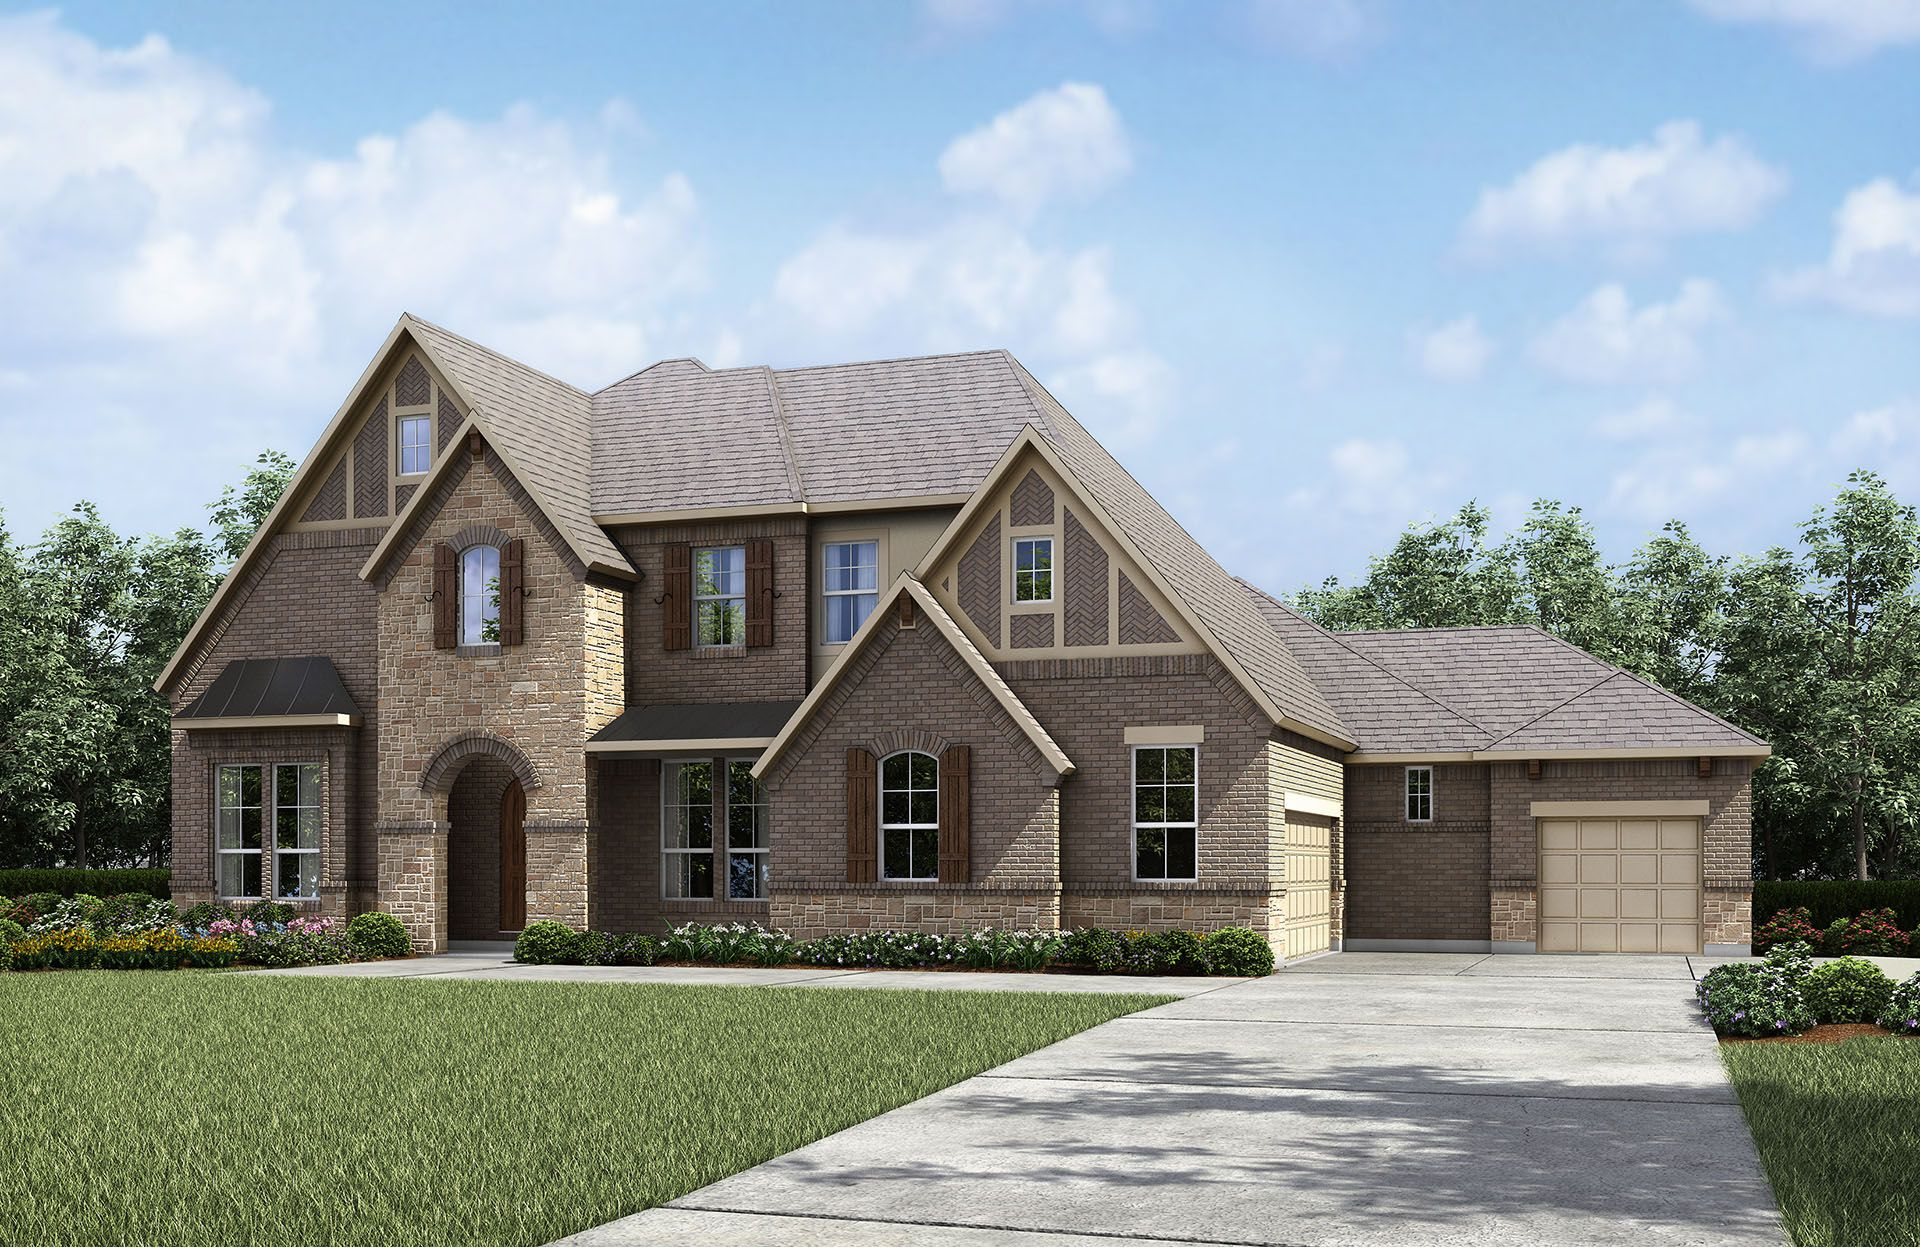 Single Family for Active at Northgate Ranch - Colinas Ii 1360 Rr 214 Liberty Hill, Texas 78642 United States